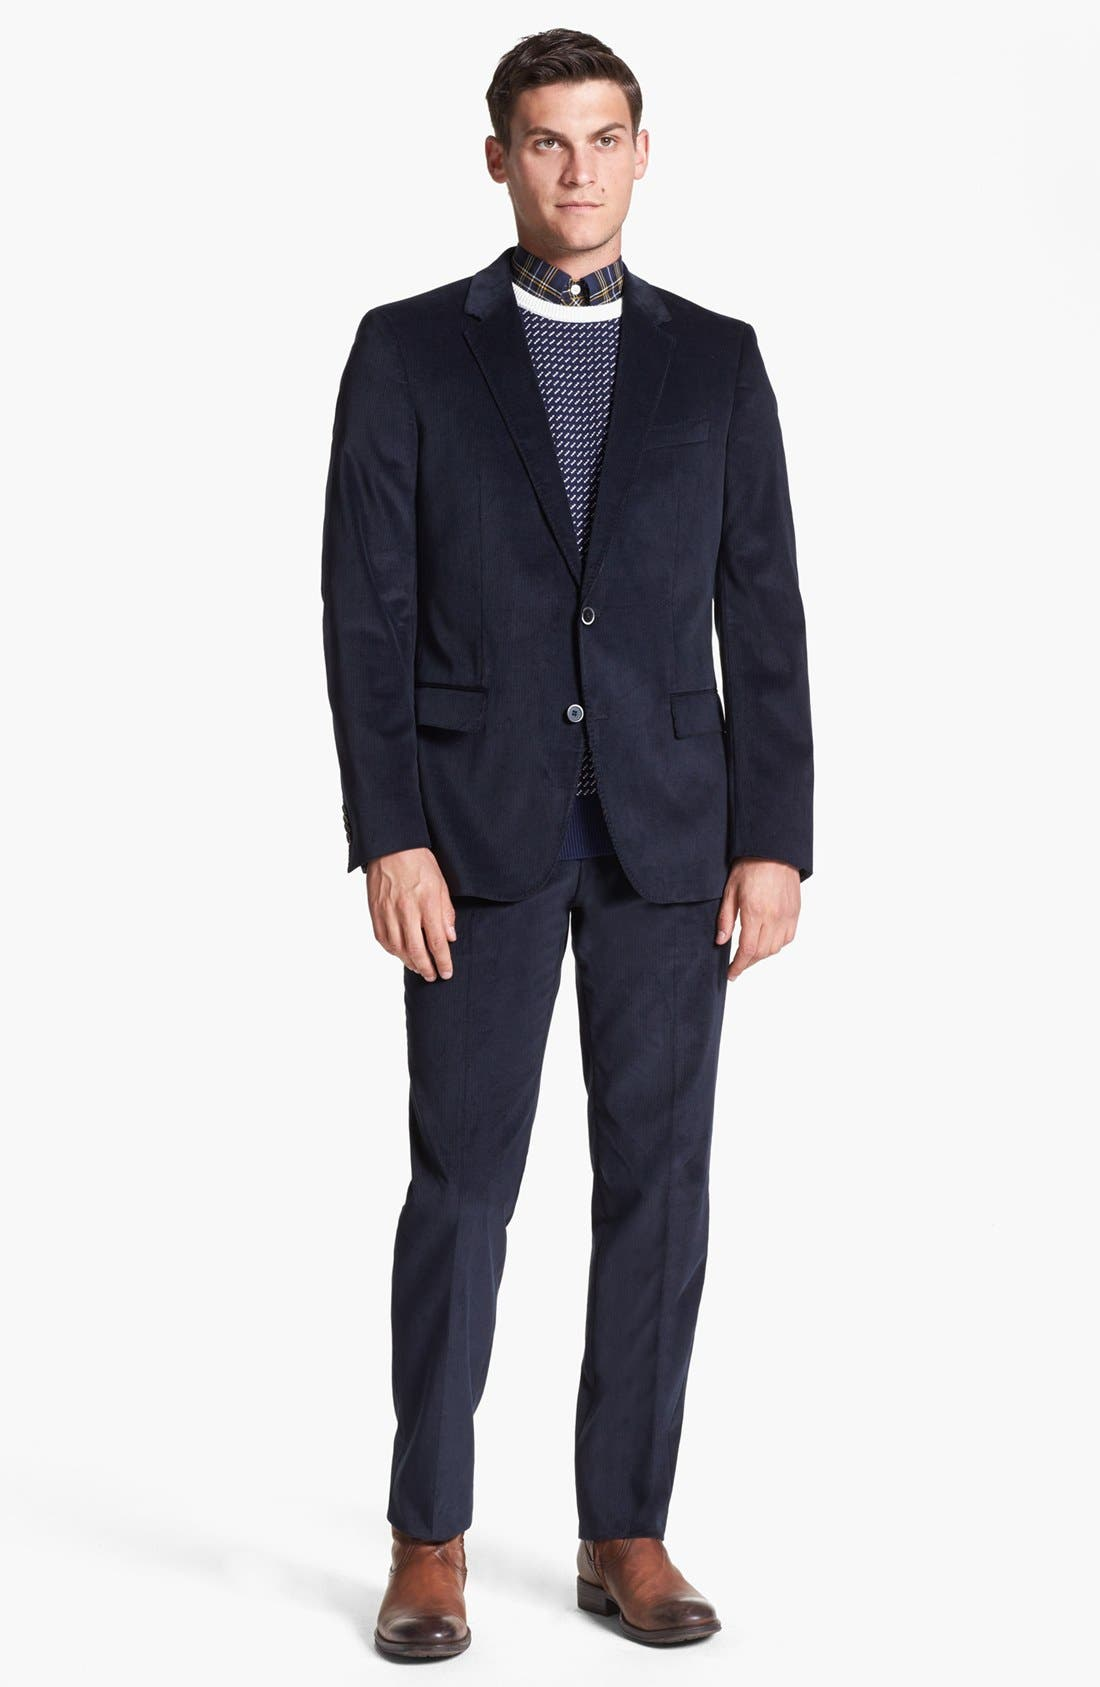 Alternate Image 1 Selected - BOSS 'Hedge/Gense' Trim Fit Corduroy Suit